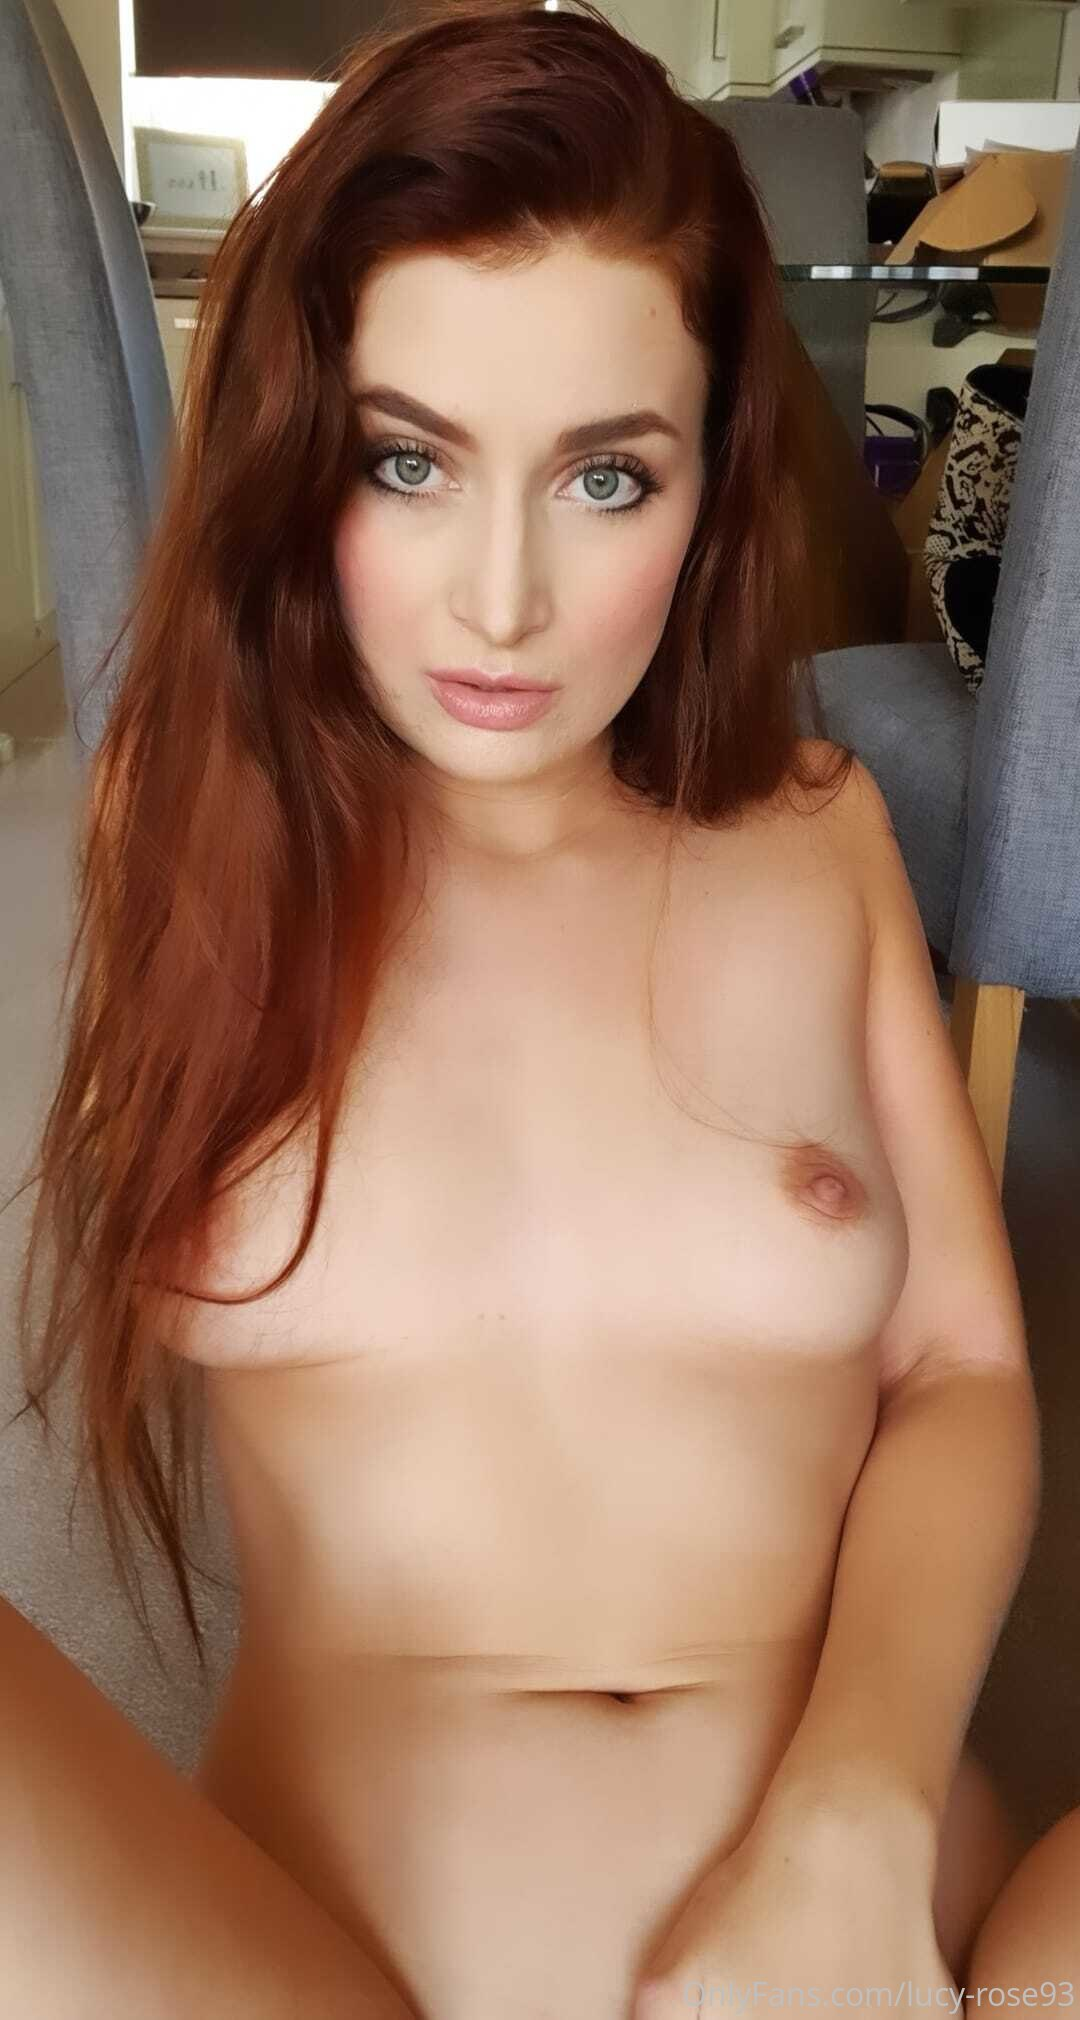 Lucy Rose, Lucy Rose93, Onlyfans 0307